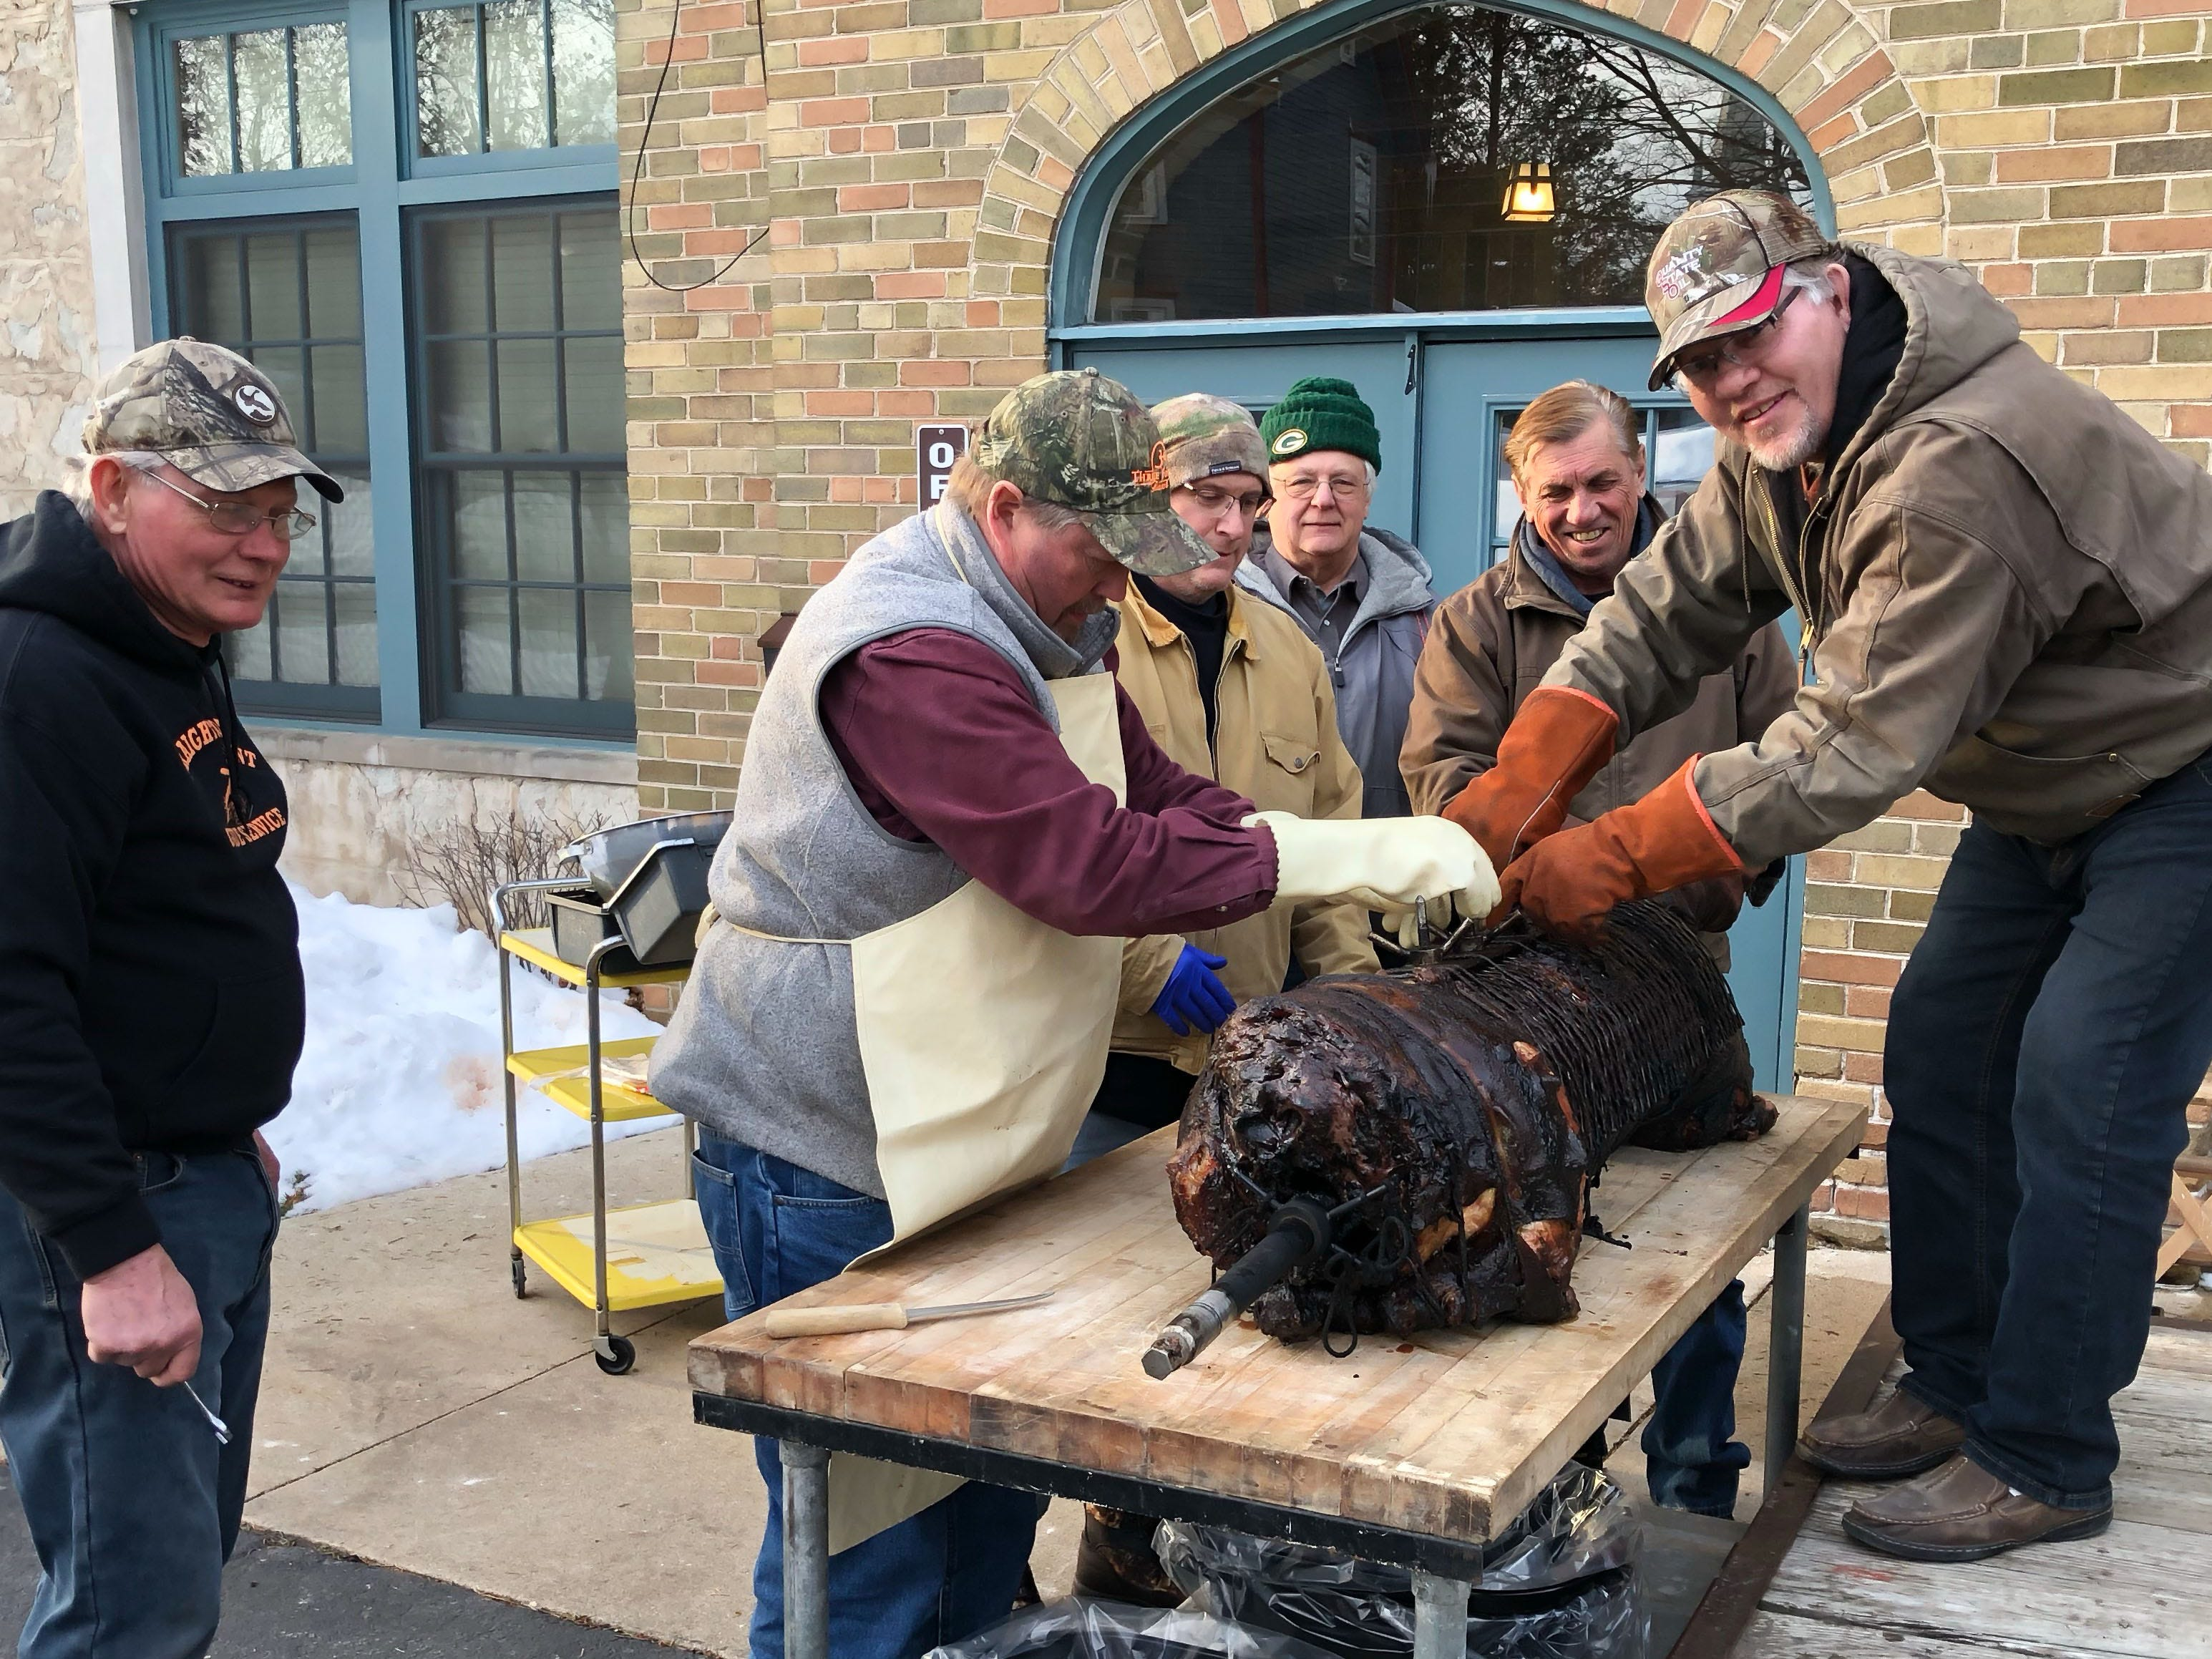 Parishioners prepare to serve up the main course during the Mardi Gras Pig Roast and pie auction at Immanuel Lutheran Church in Cedarburg on Sunday, March 3, 2019. The event is a fundraiser for the church.